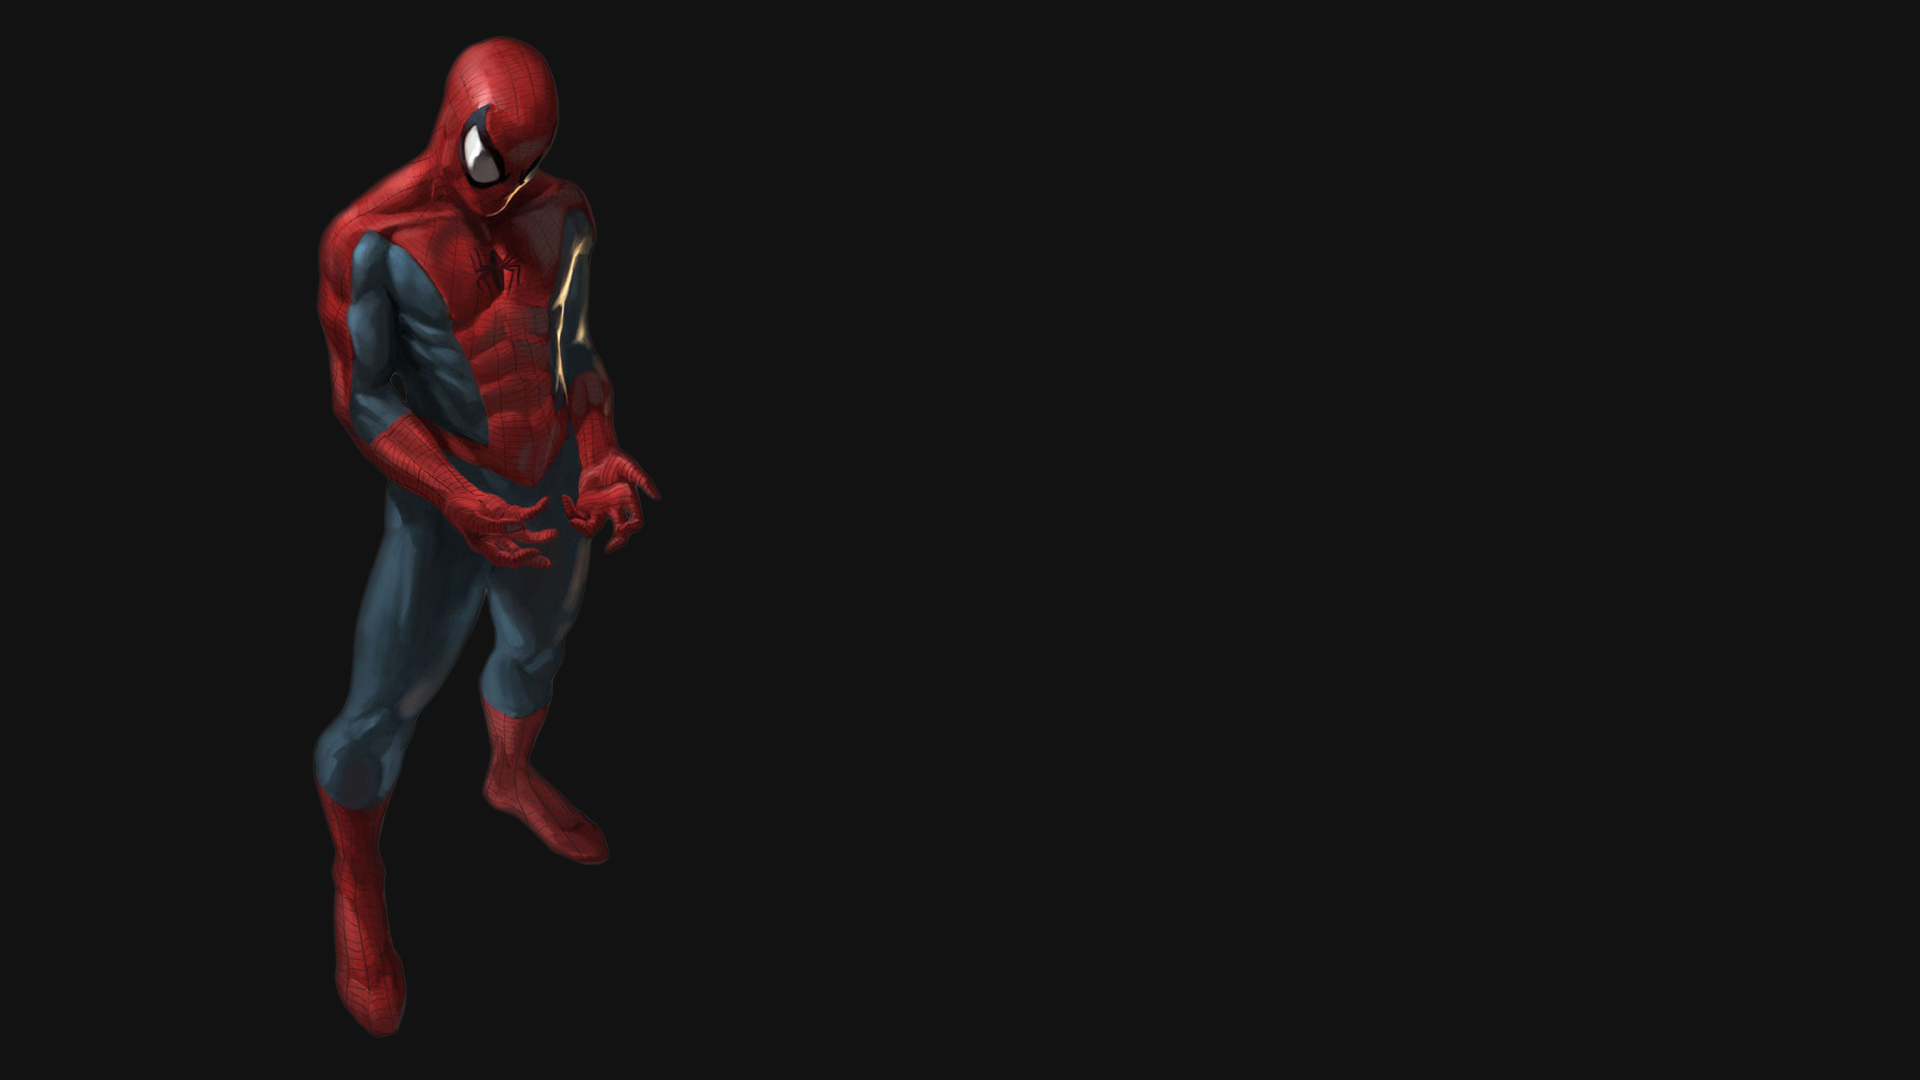 Spiderman | Spiderman Images, Pictures, Wallpapers on BsnSCB.com